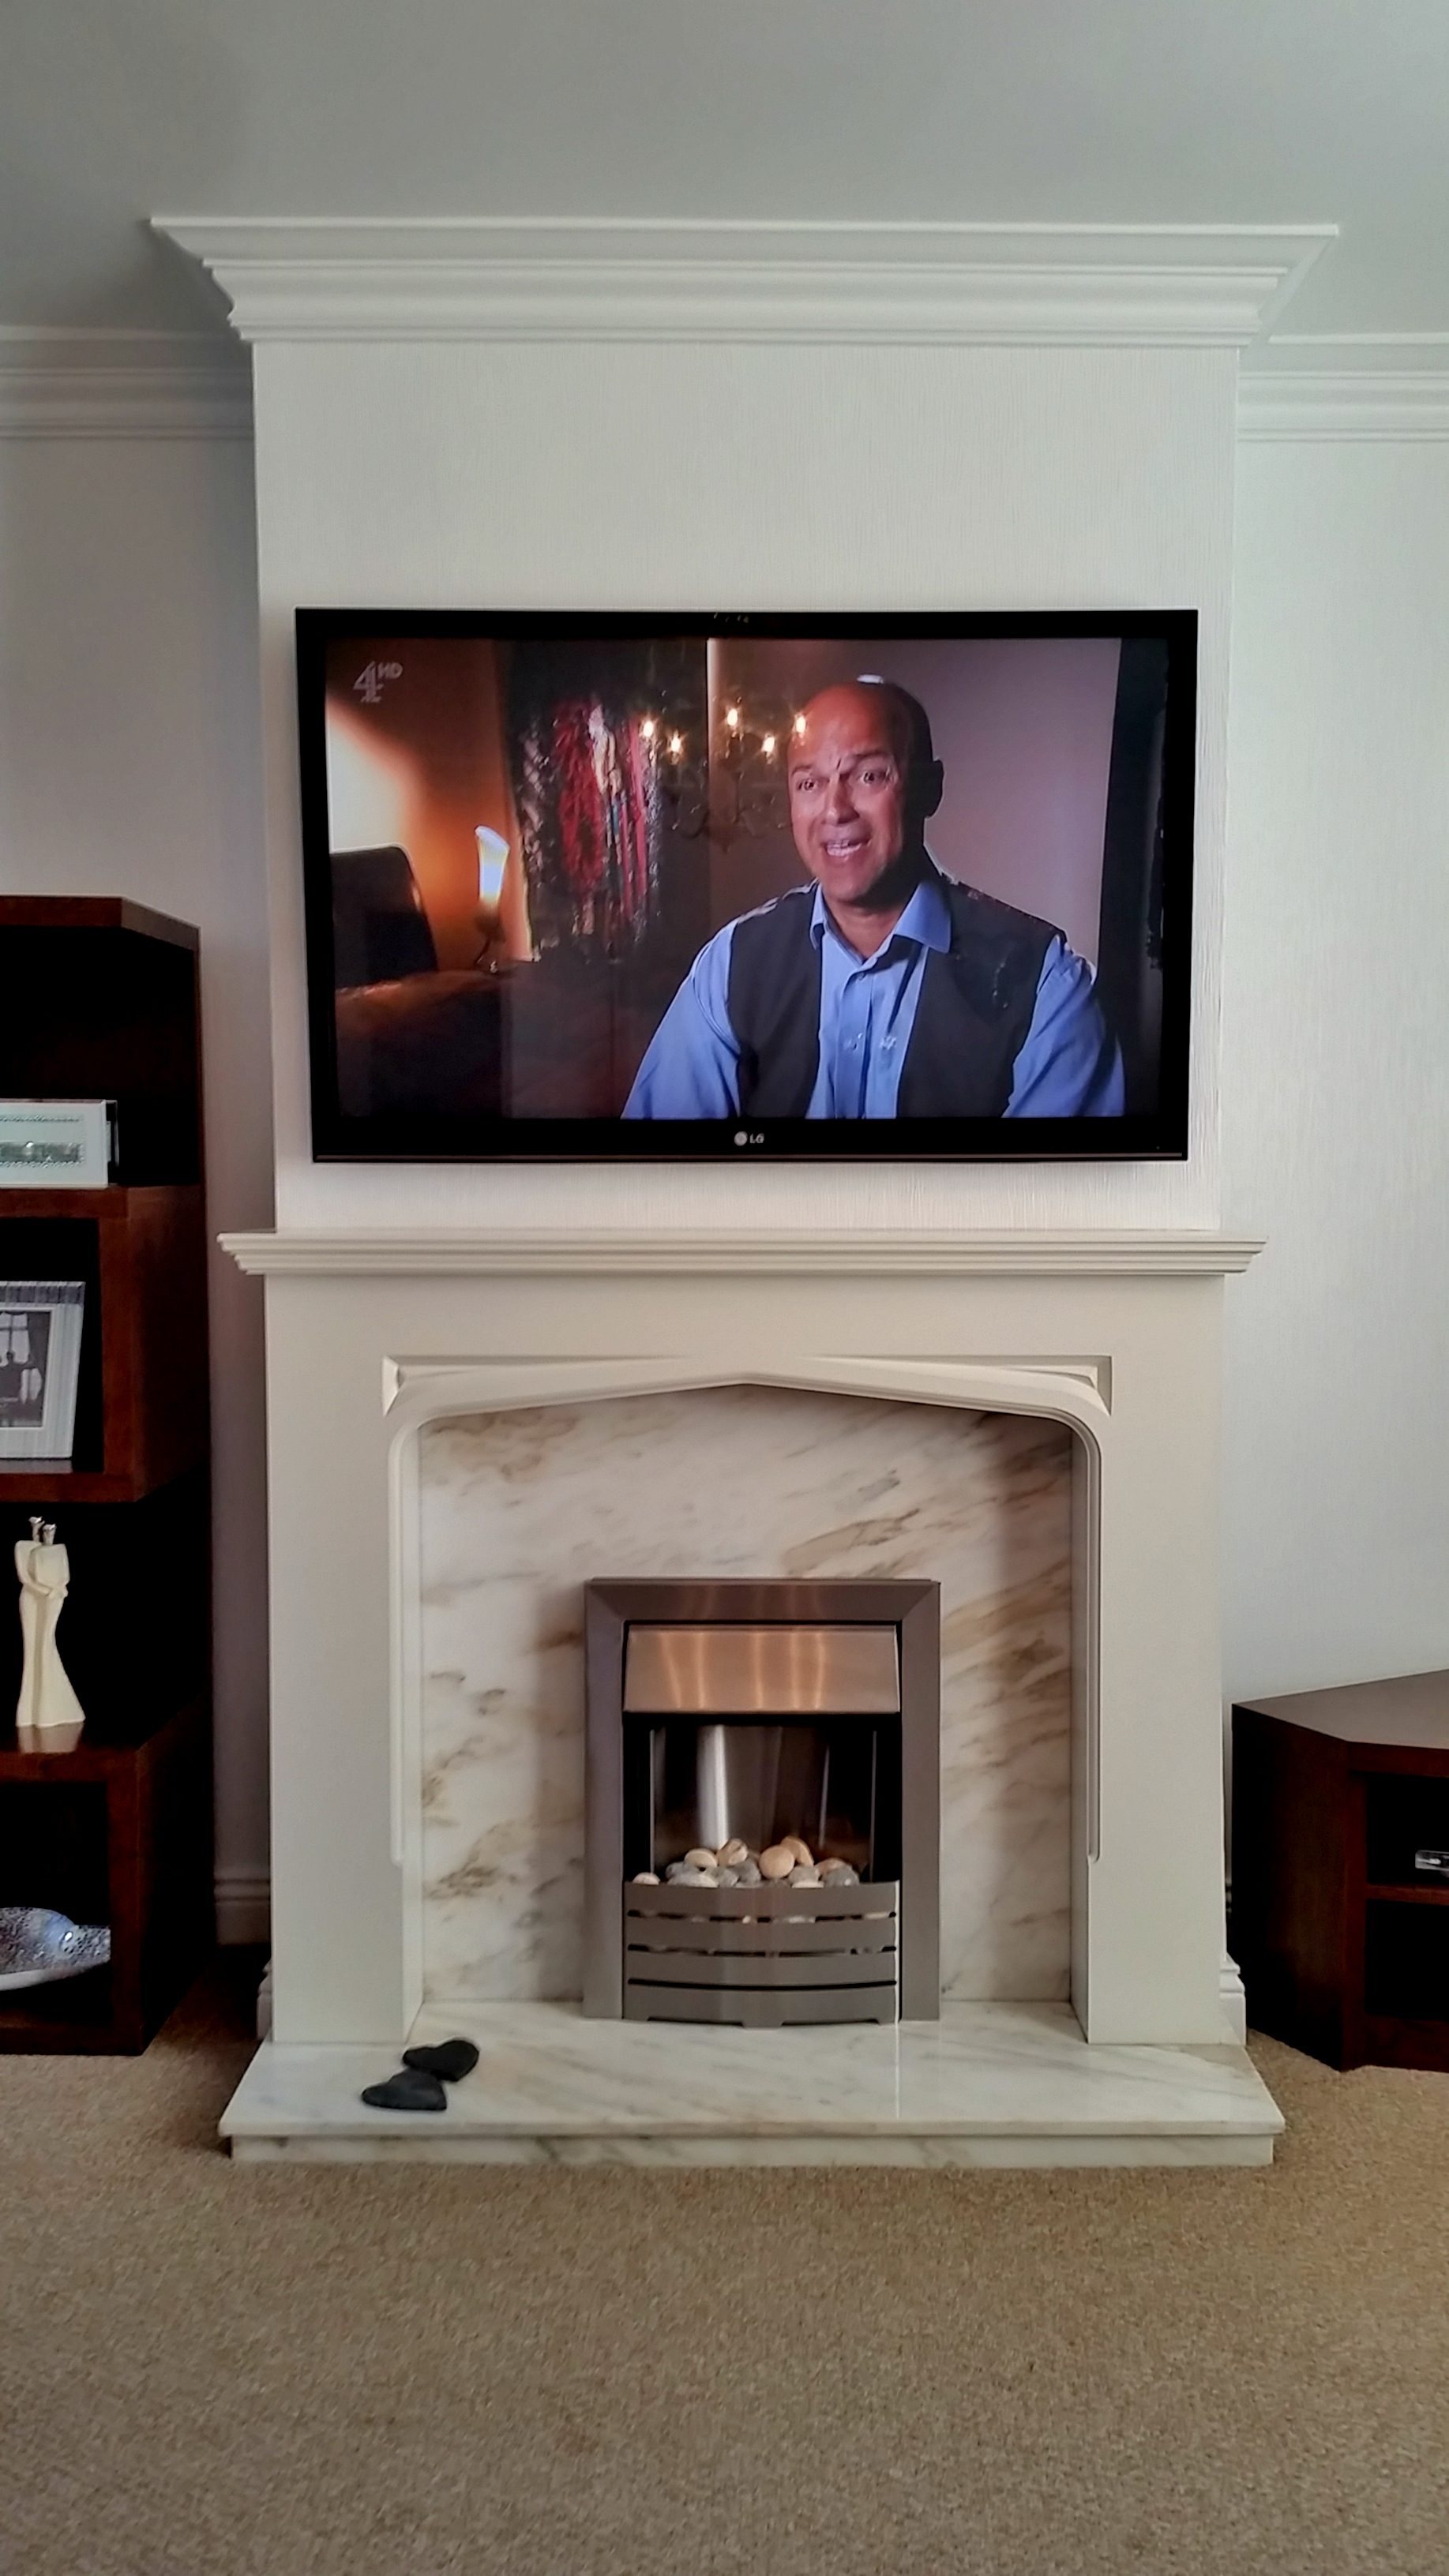 Samsung Plasma TV above Fire